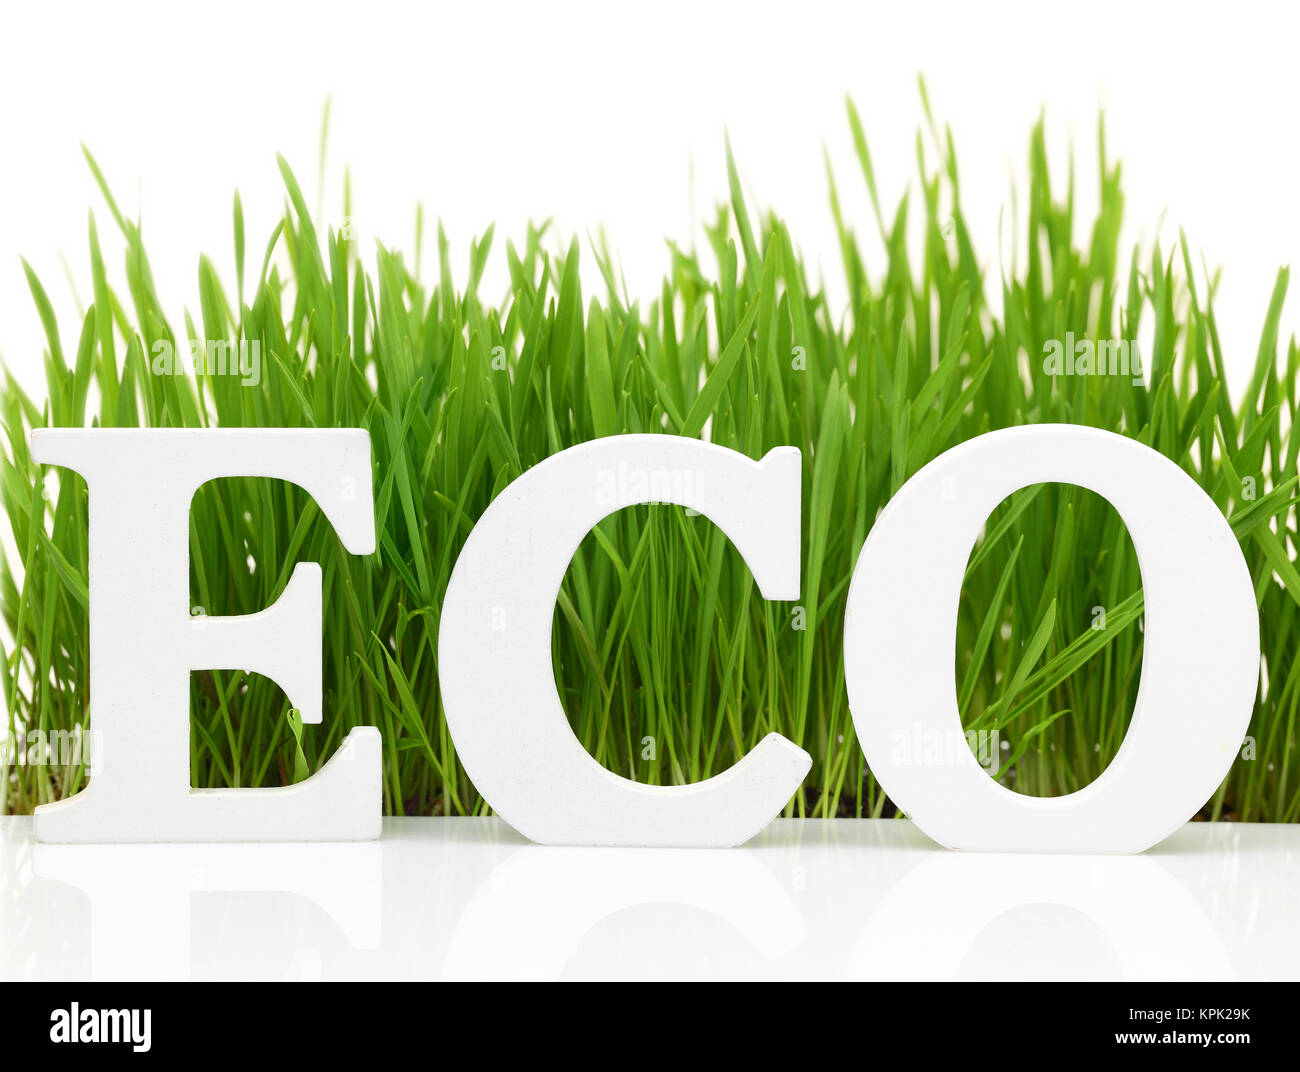 Word 'Eco' with fresh grass isolated on white - Stock Image